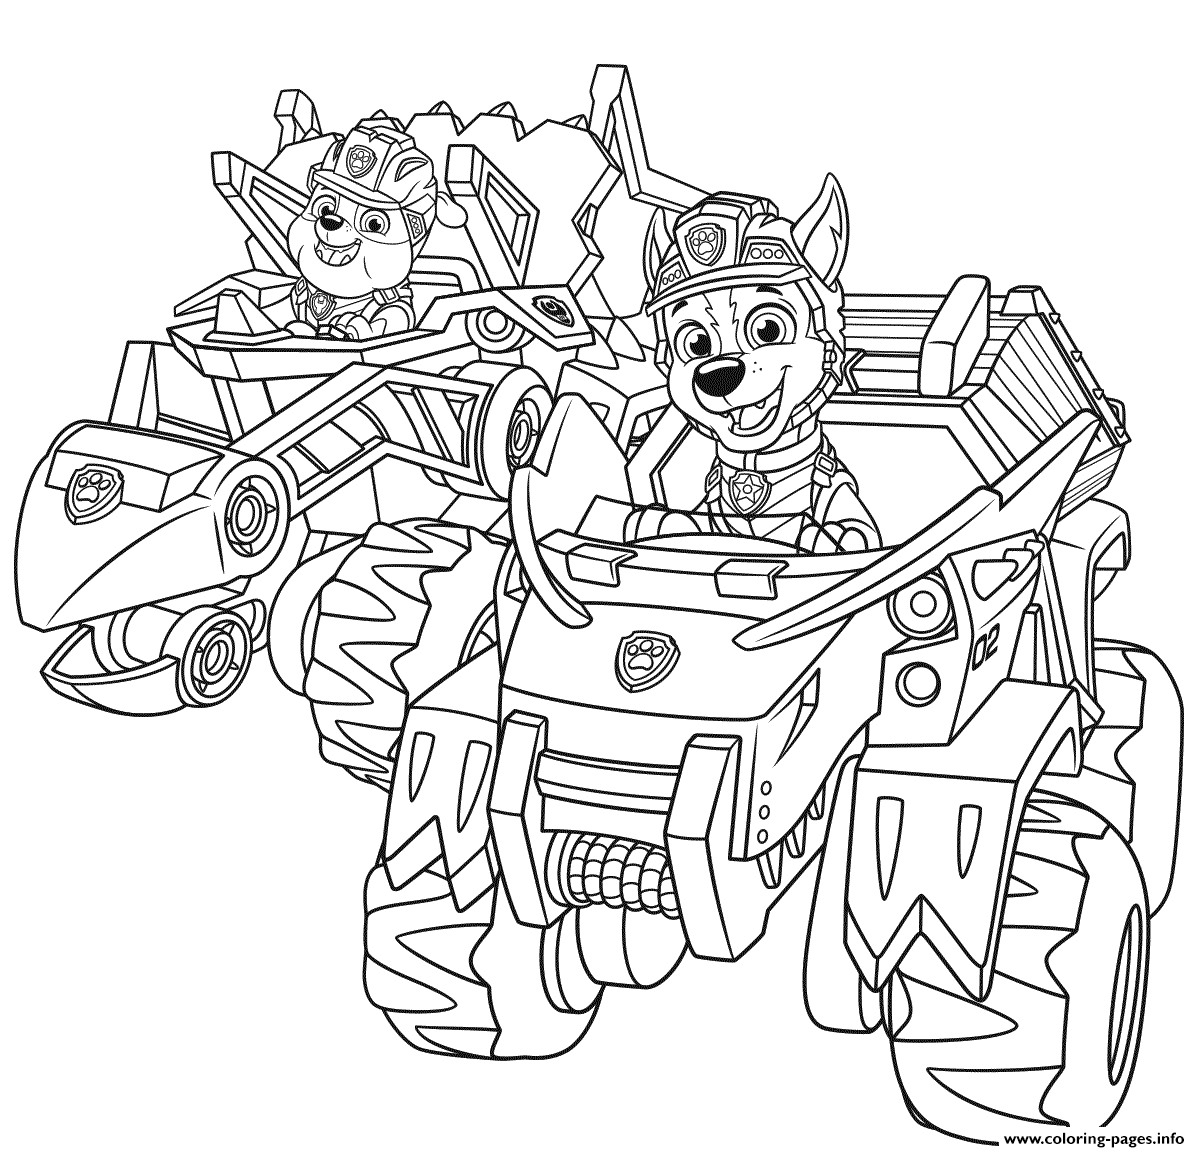 Paw Patrol Dino Rescue Cars Coloring Pages Printable